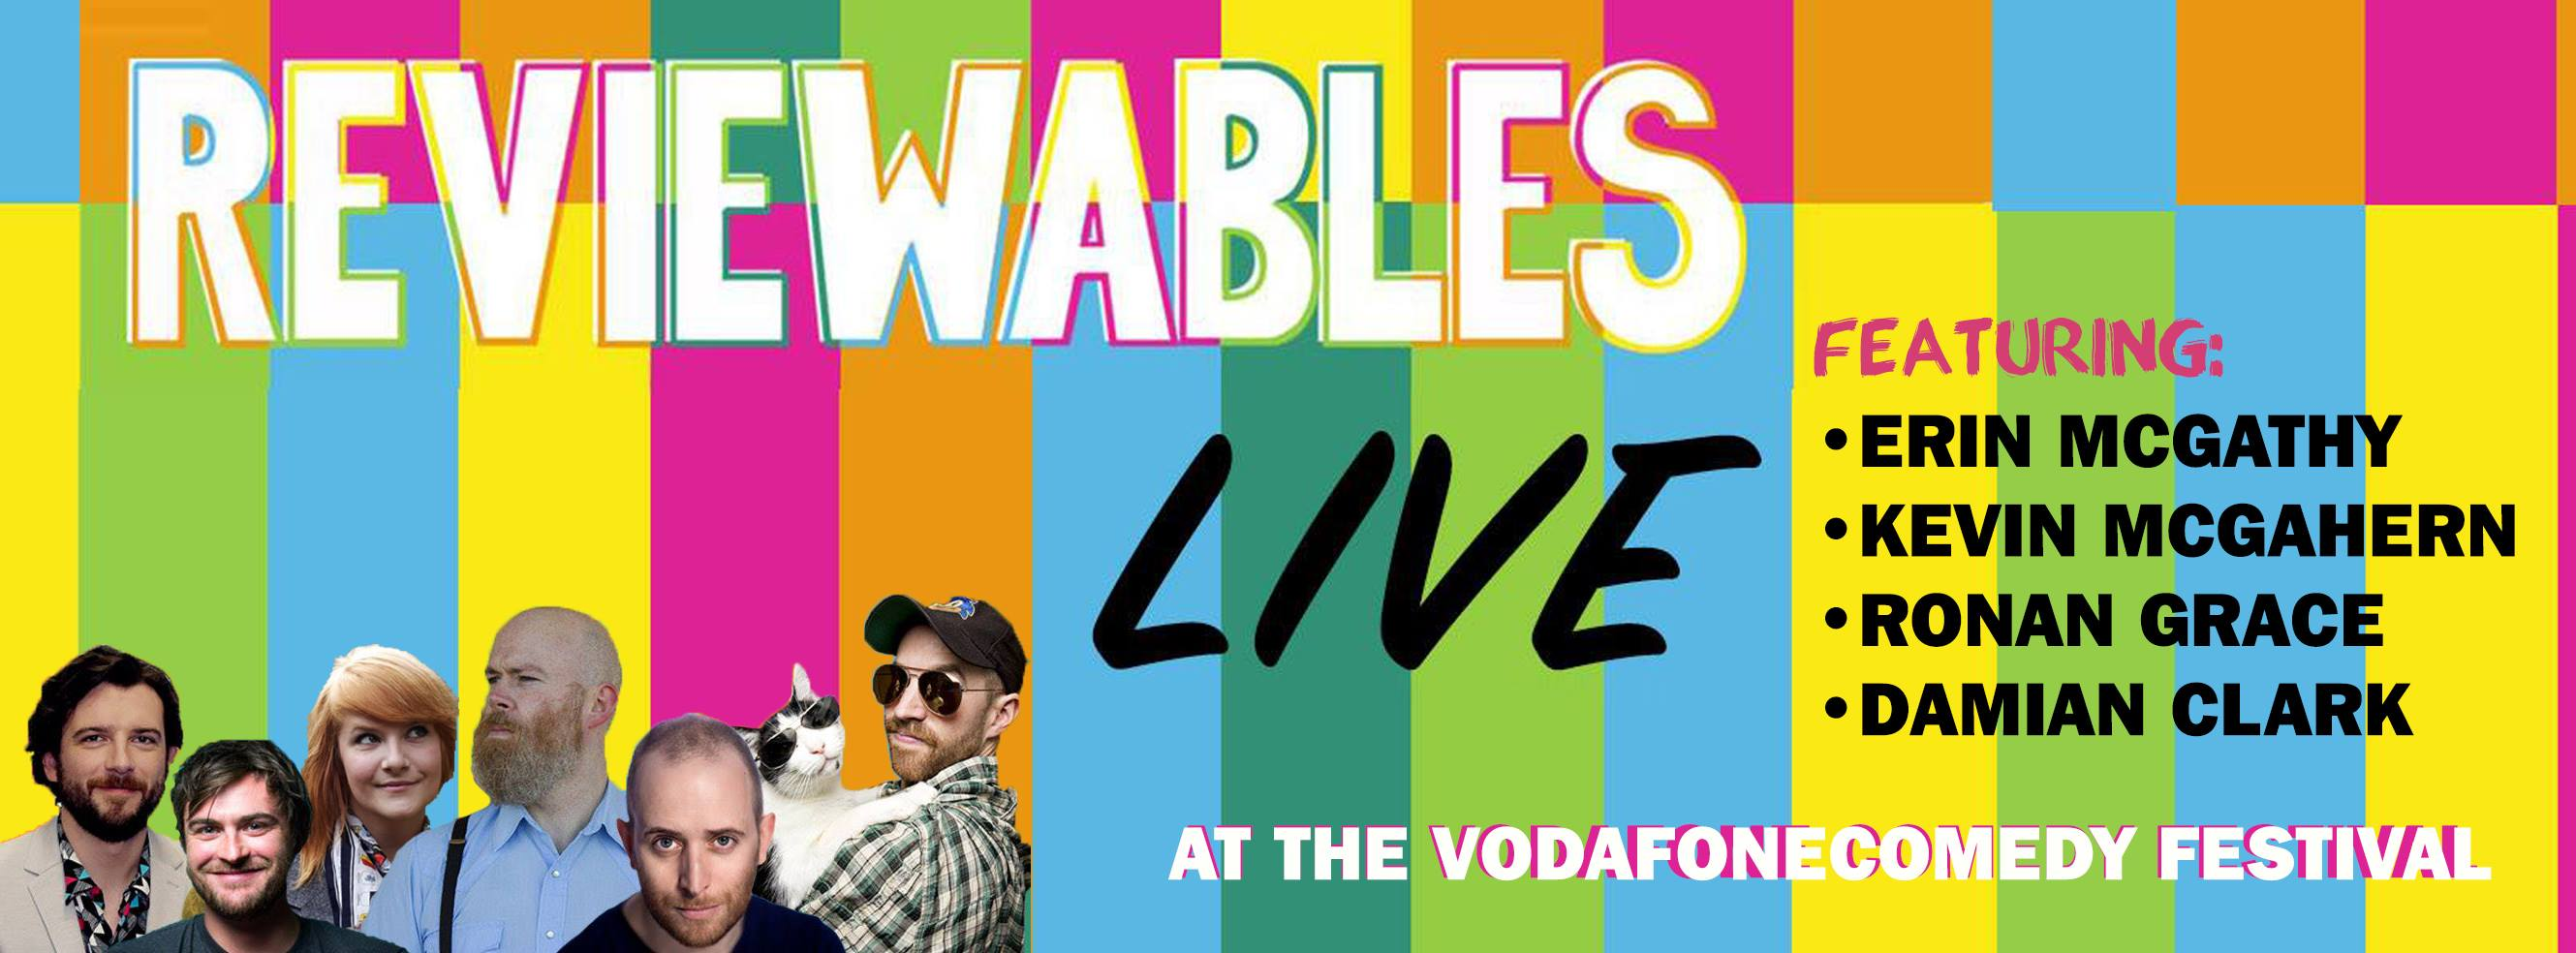 Reviewables live at the vodafone comedy festival with Cian McGarrigle, Edwin Sammon, Ronan Grace, Erin McGathy, Damian Clark, Kevin McGahern - HeadStuff.org